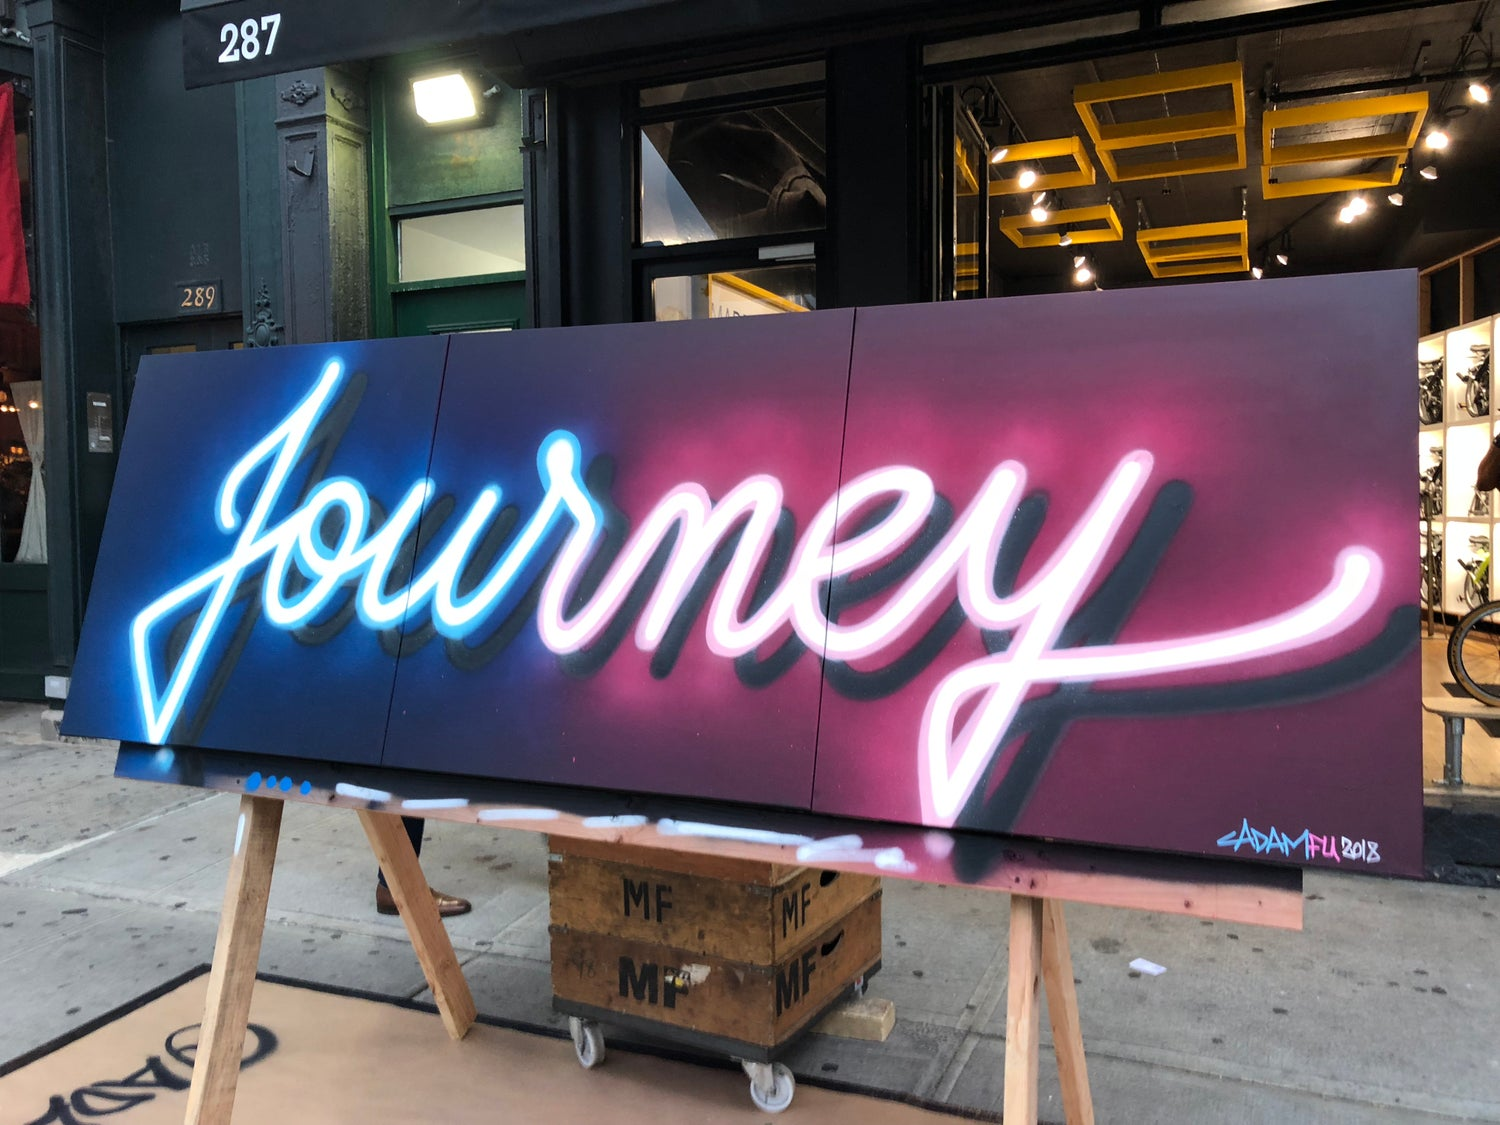 Image of Journey canvas with Brompton Bikes